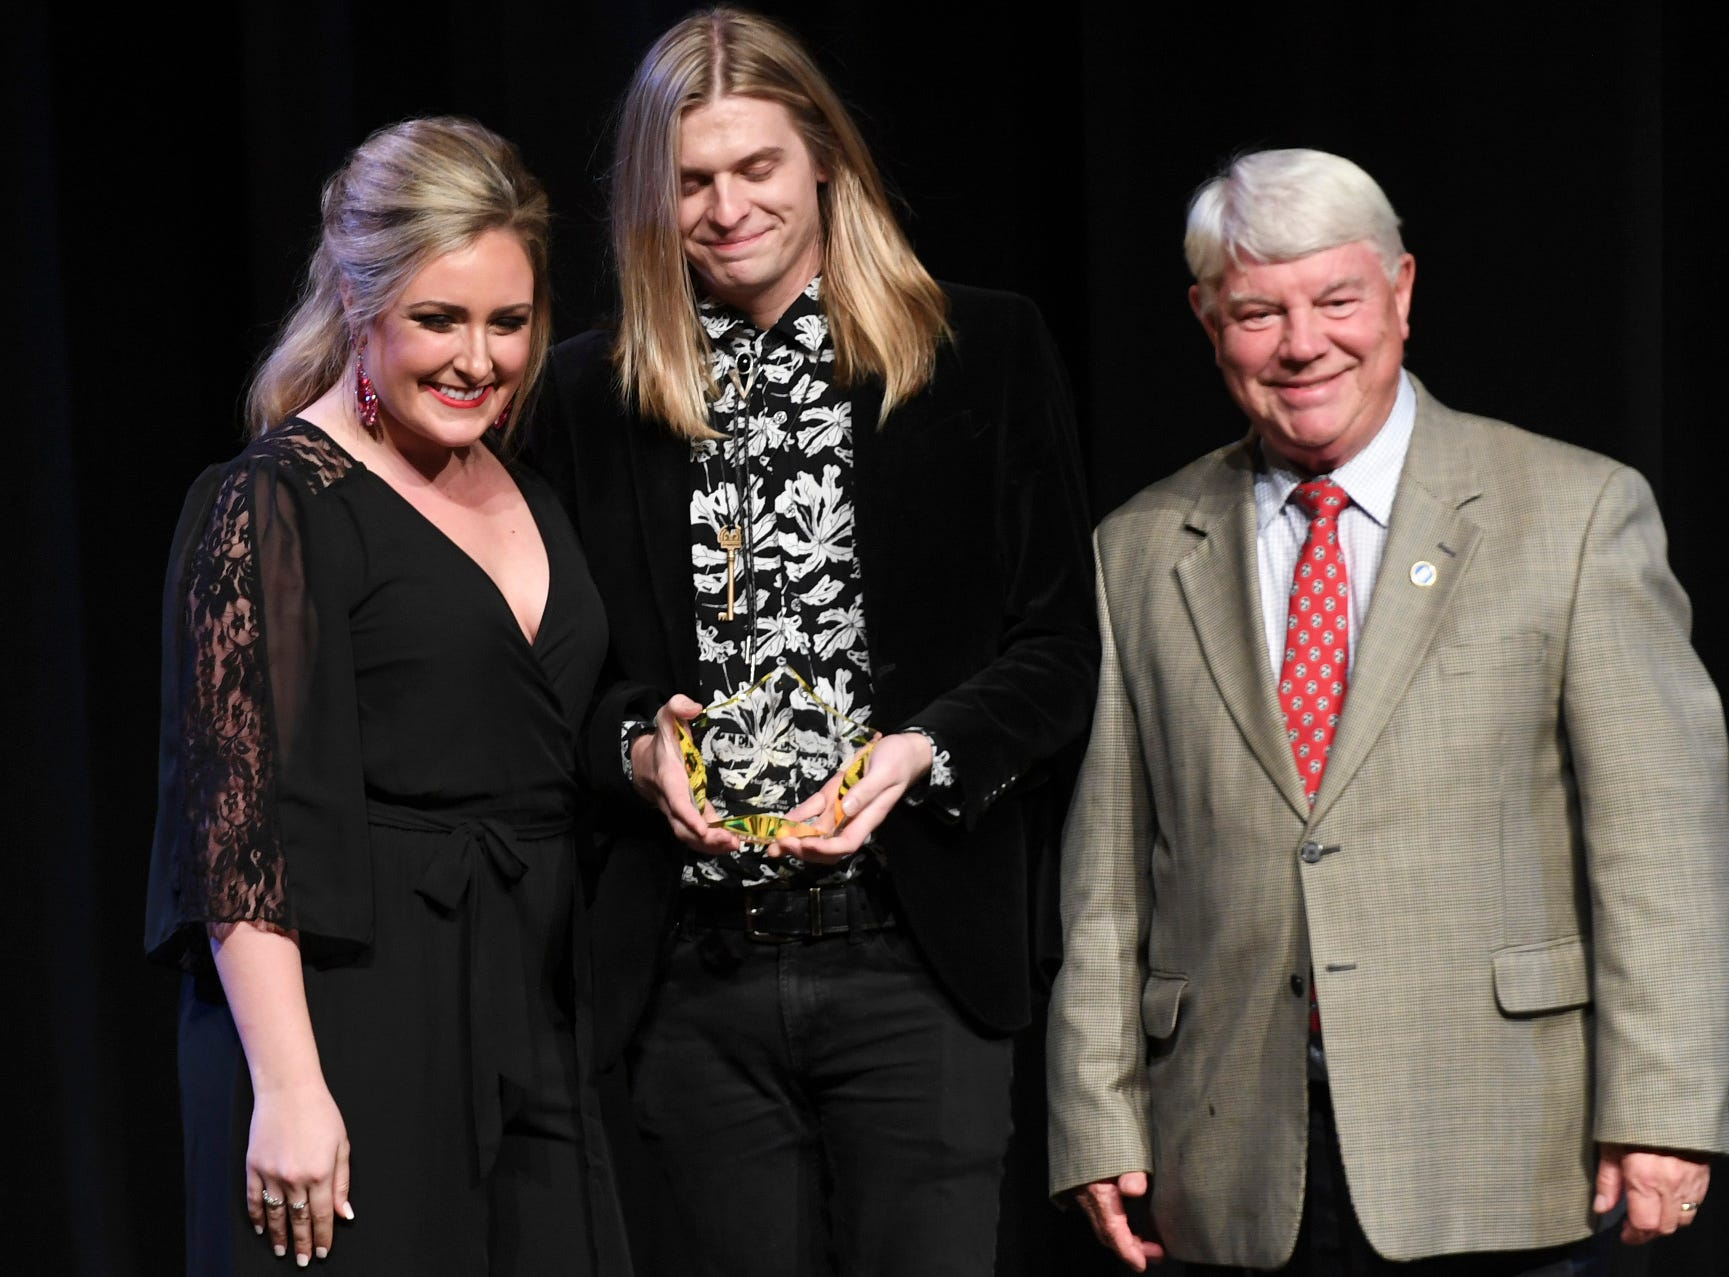 Hunter Cross was presented with the Guitarist of the Year Award at the 2nd Annual Tennessee Music Awards, Monday, October 8, at University of Memphis Lambuth.